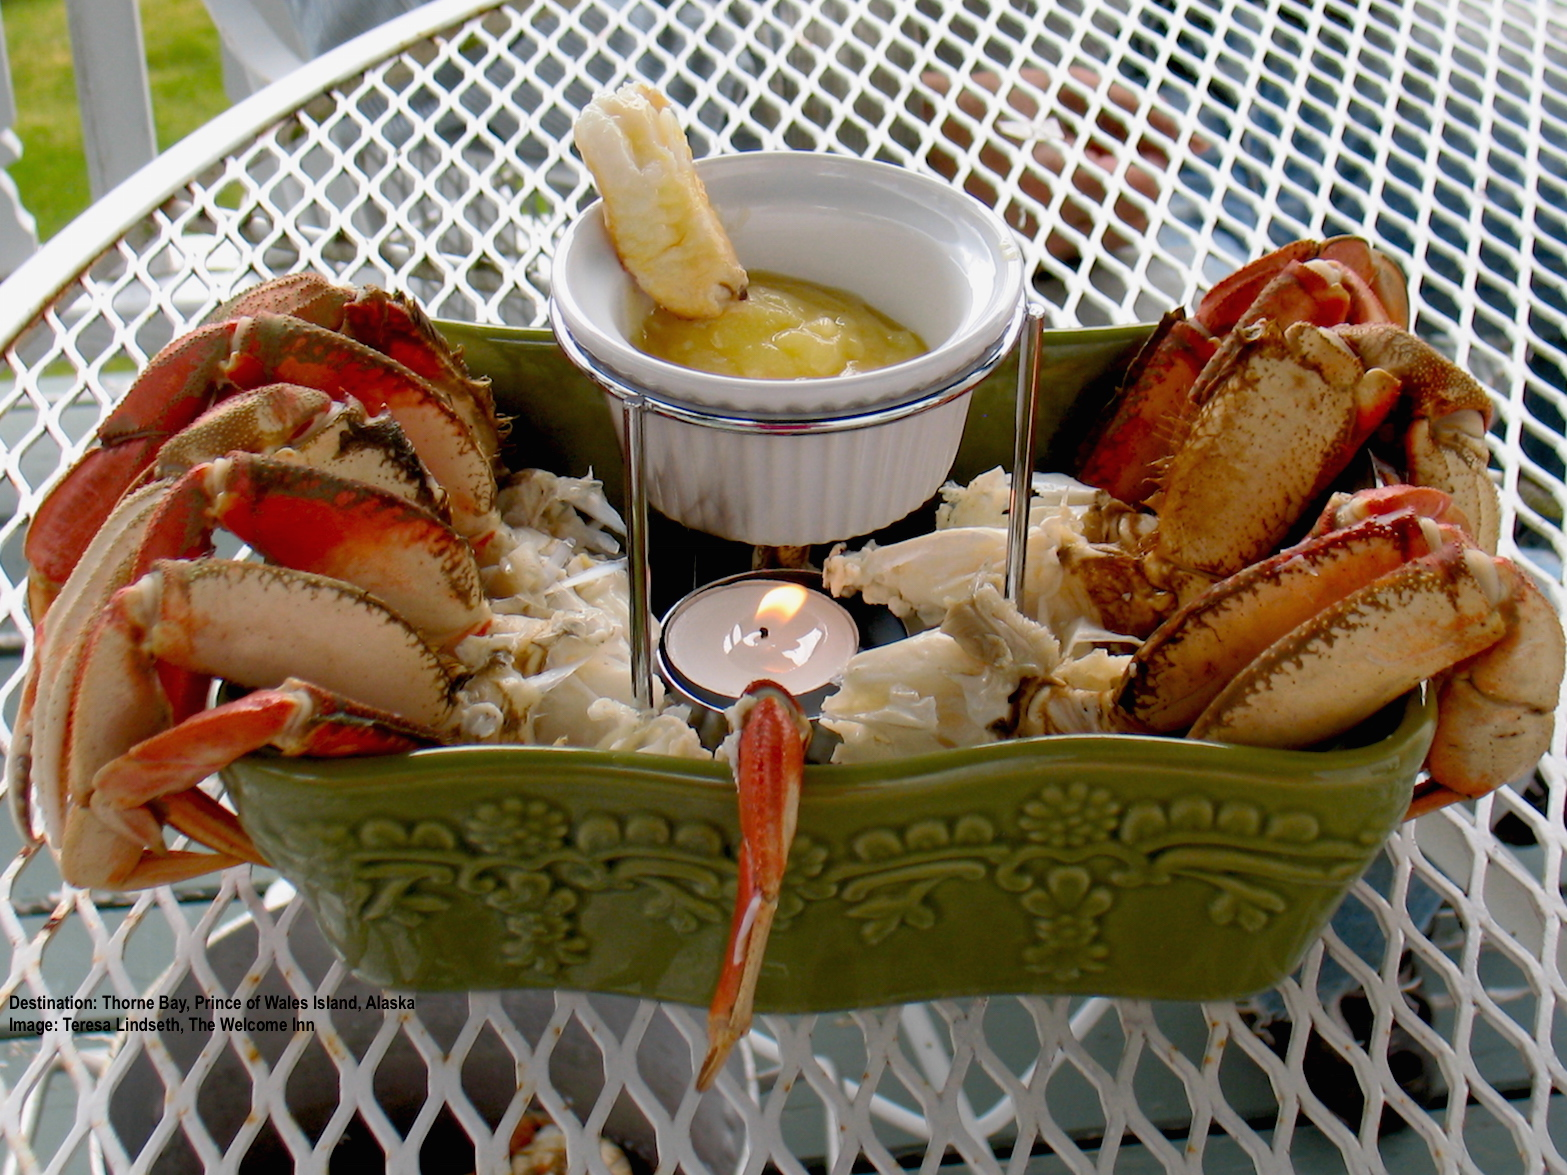 CRAB SO FRESH IT WAS SWIMMING AN HOUR AGO AT THE WELCOME INN AT THORNE BAY, JUST ONE OF TERESA'S FABULOUS MEALS, CONSUMED WHILE LOOKING OUT OVER THE BAY, OF COURSE! IMAGE: COURTESY OF WELCOME INN.